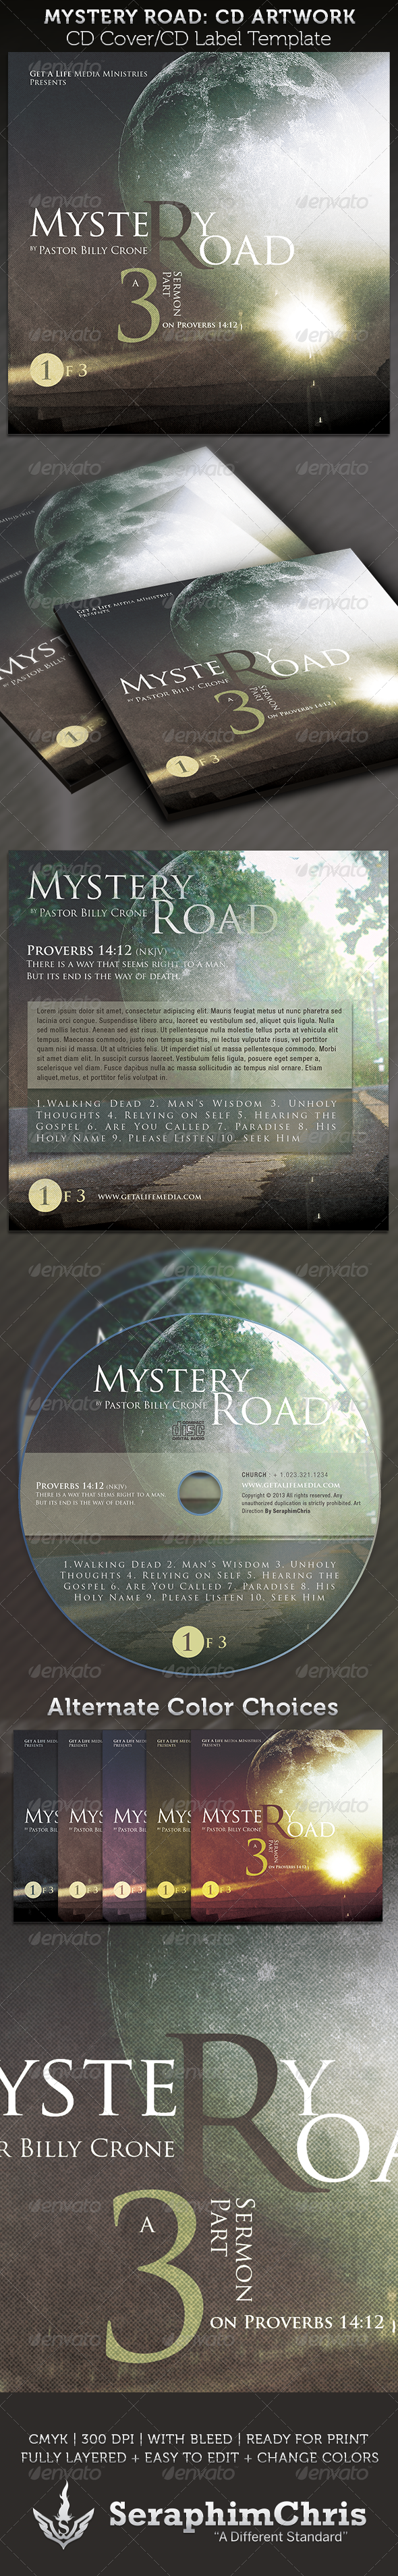 GraphicRiver Mystery Road CD Cover Artwork Template 3836437